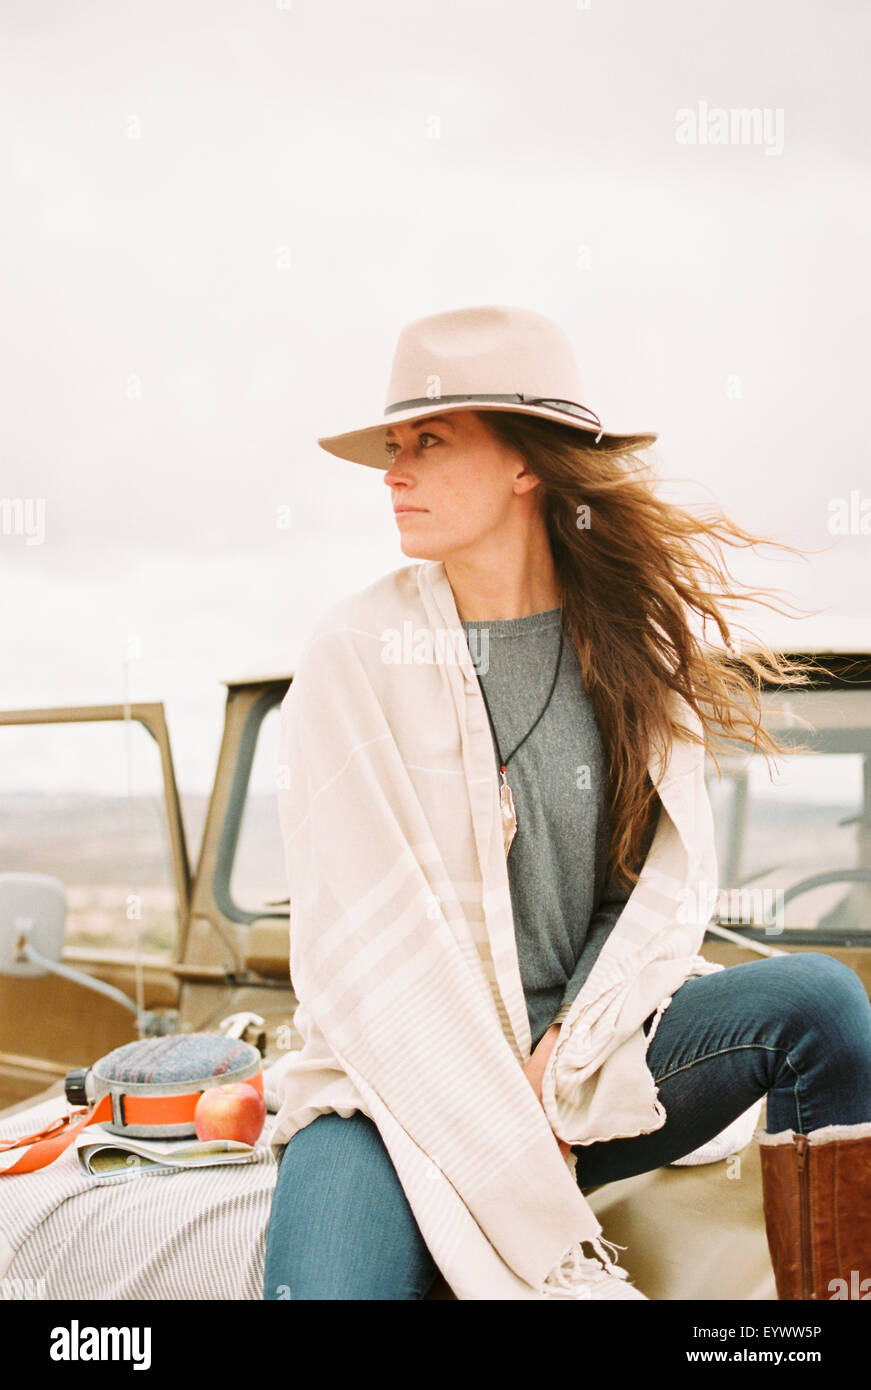 Woman wearing a hat sitting on the front of a jeep looking around her. - Stock Image